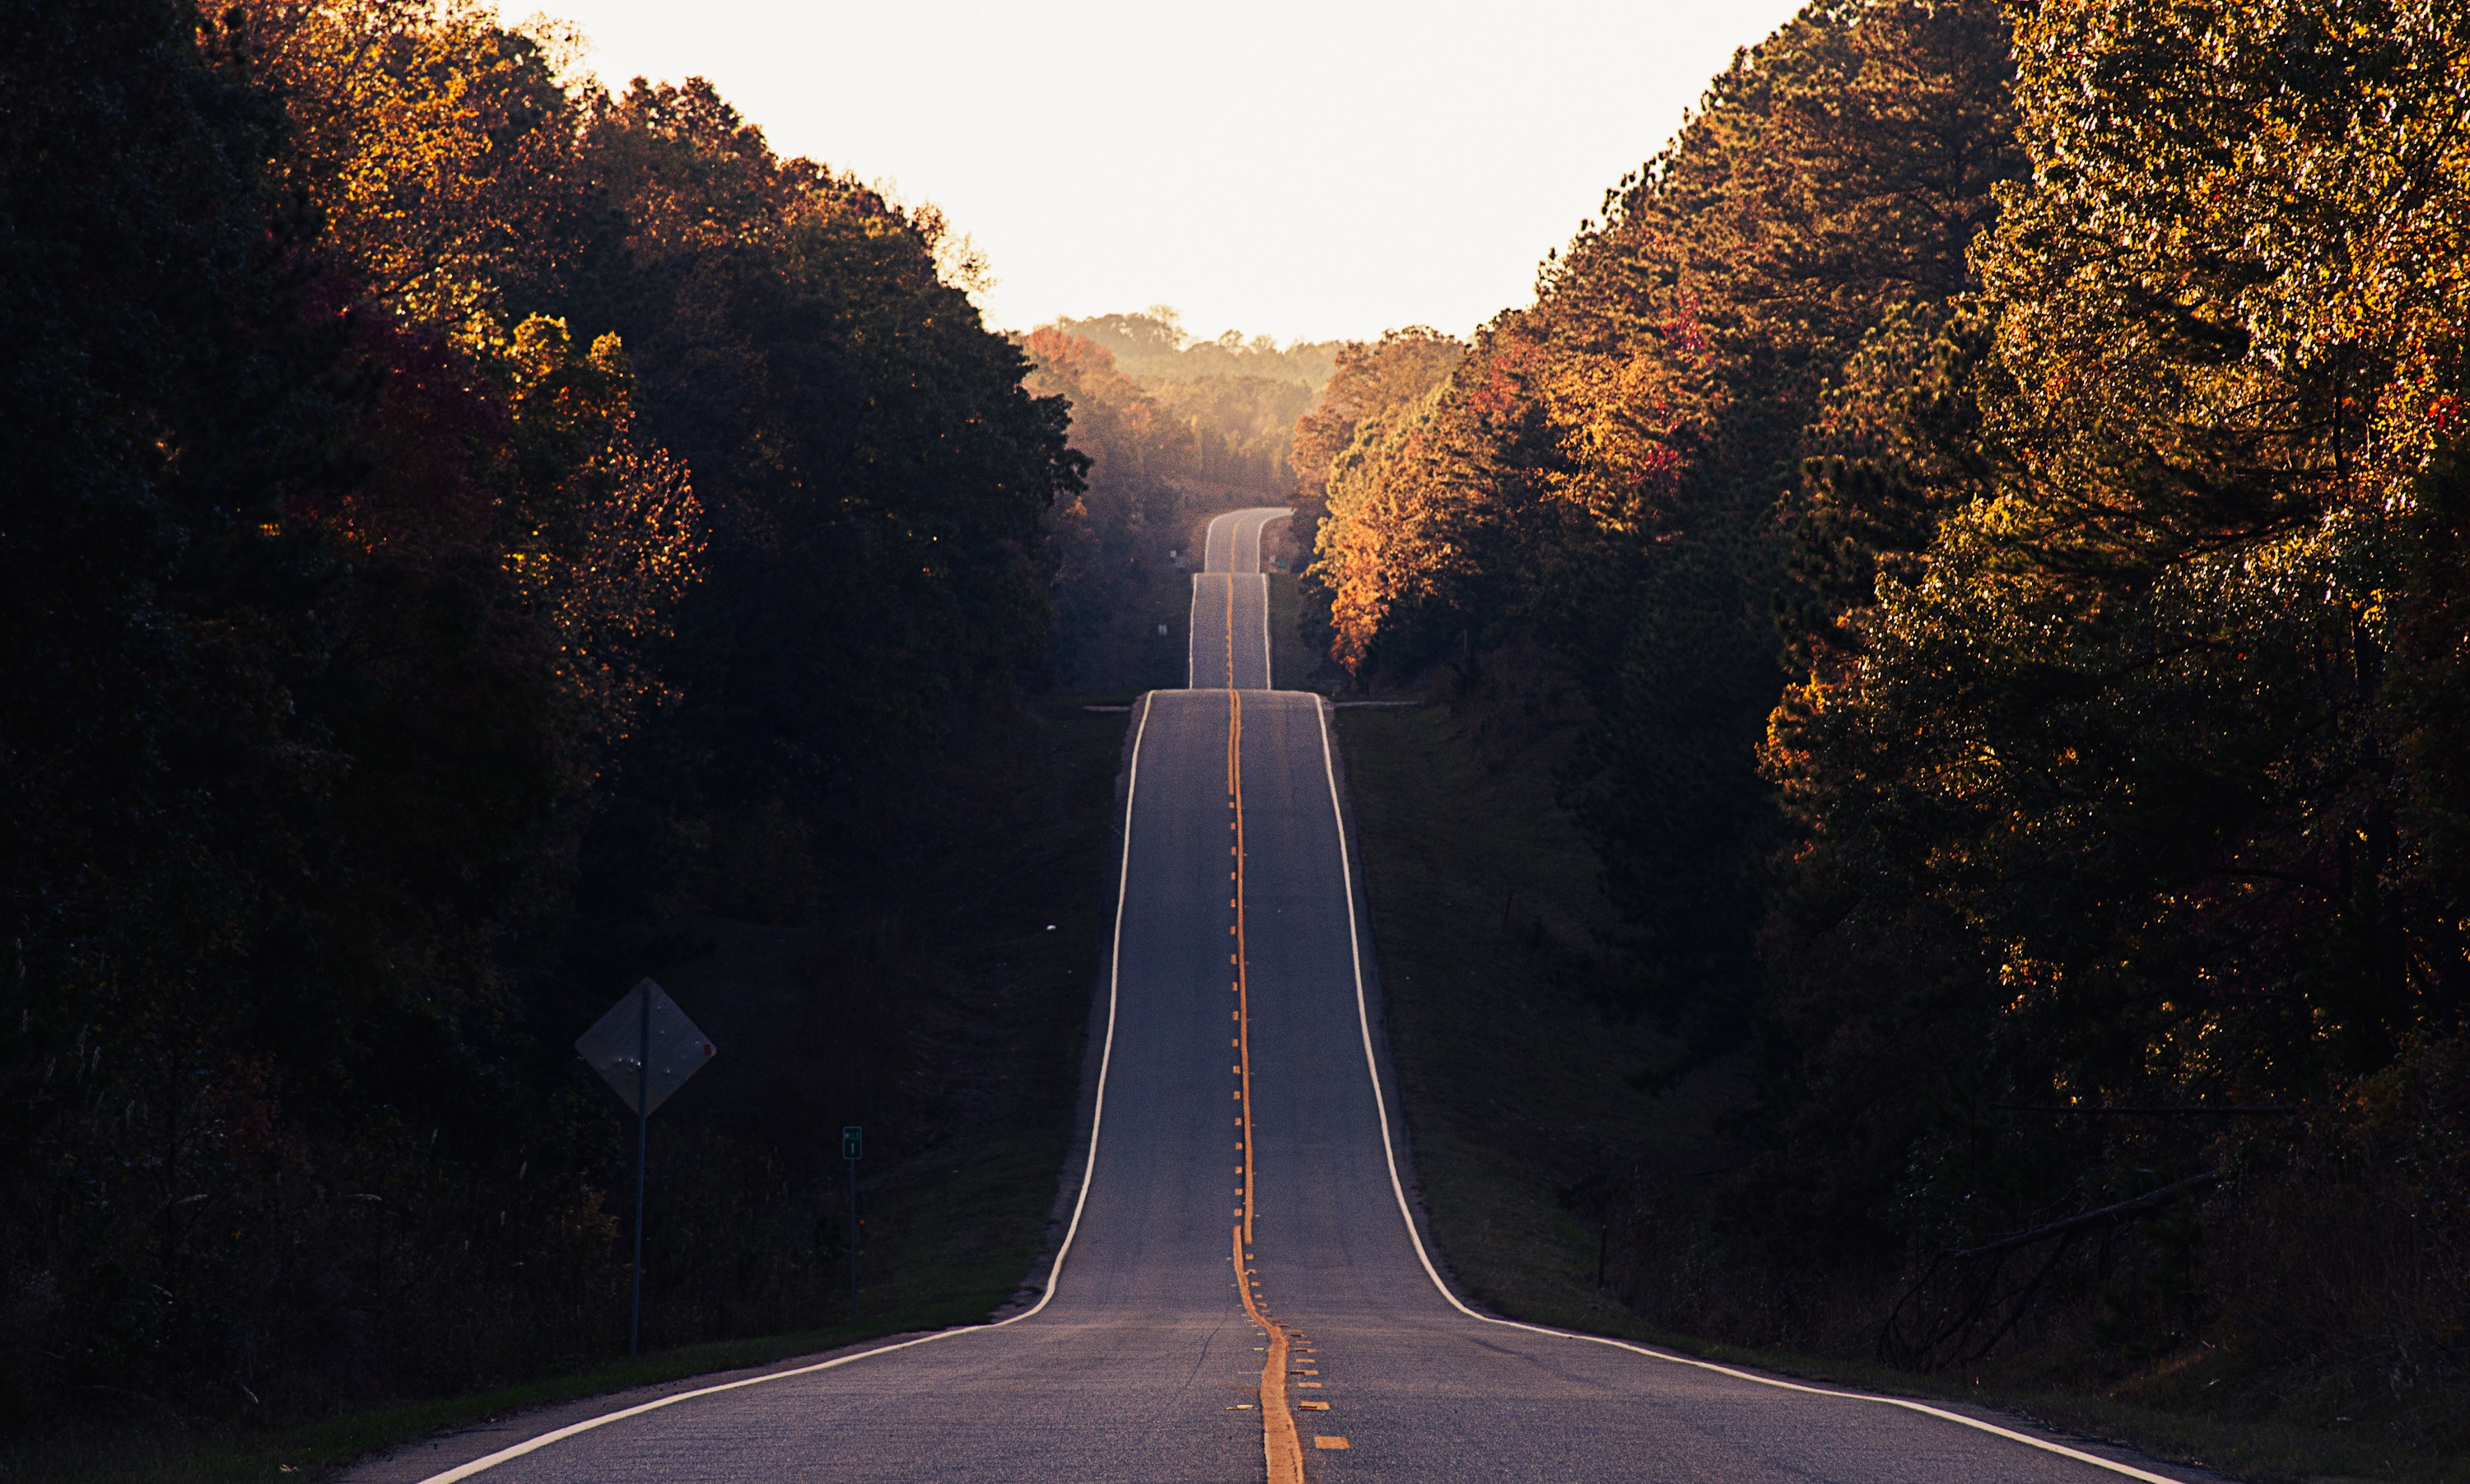 An endless highway symbolizing that DNA testing may not provide all the answers.